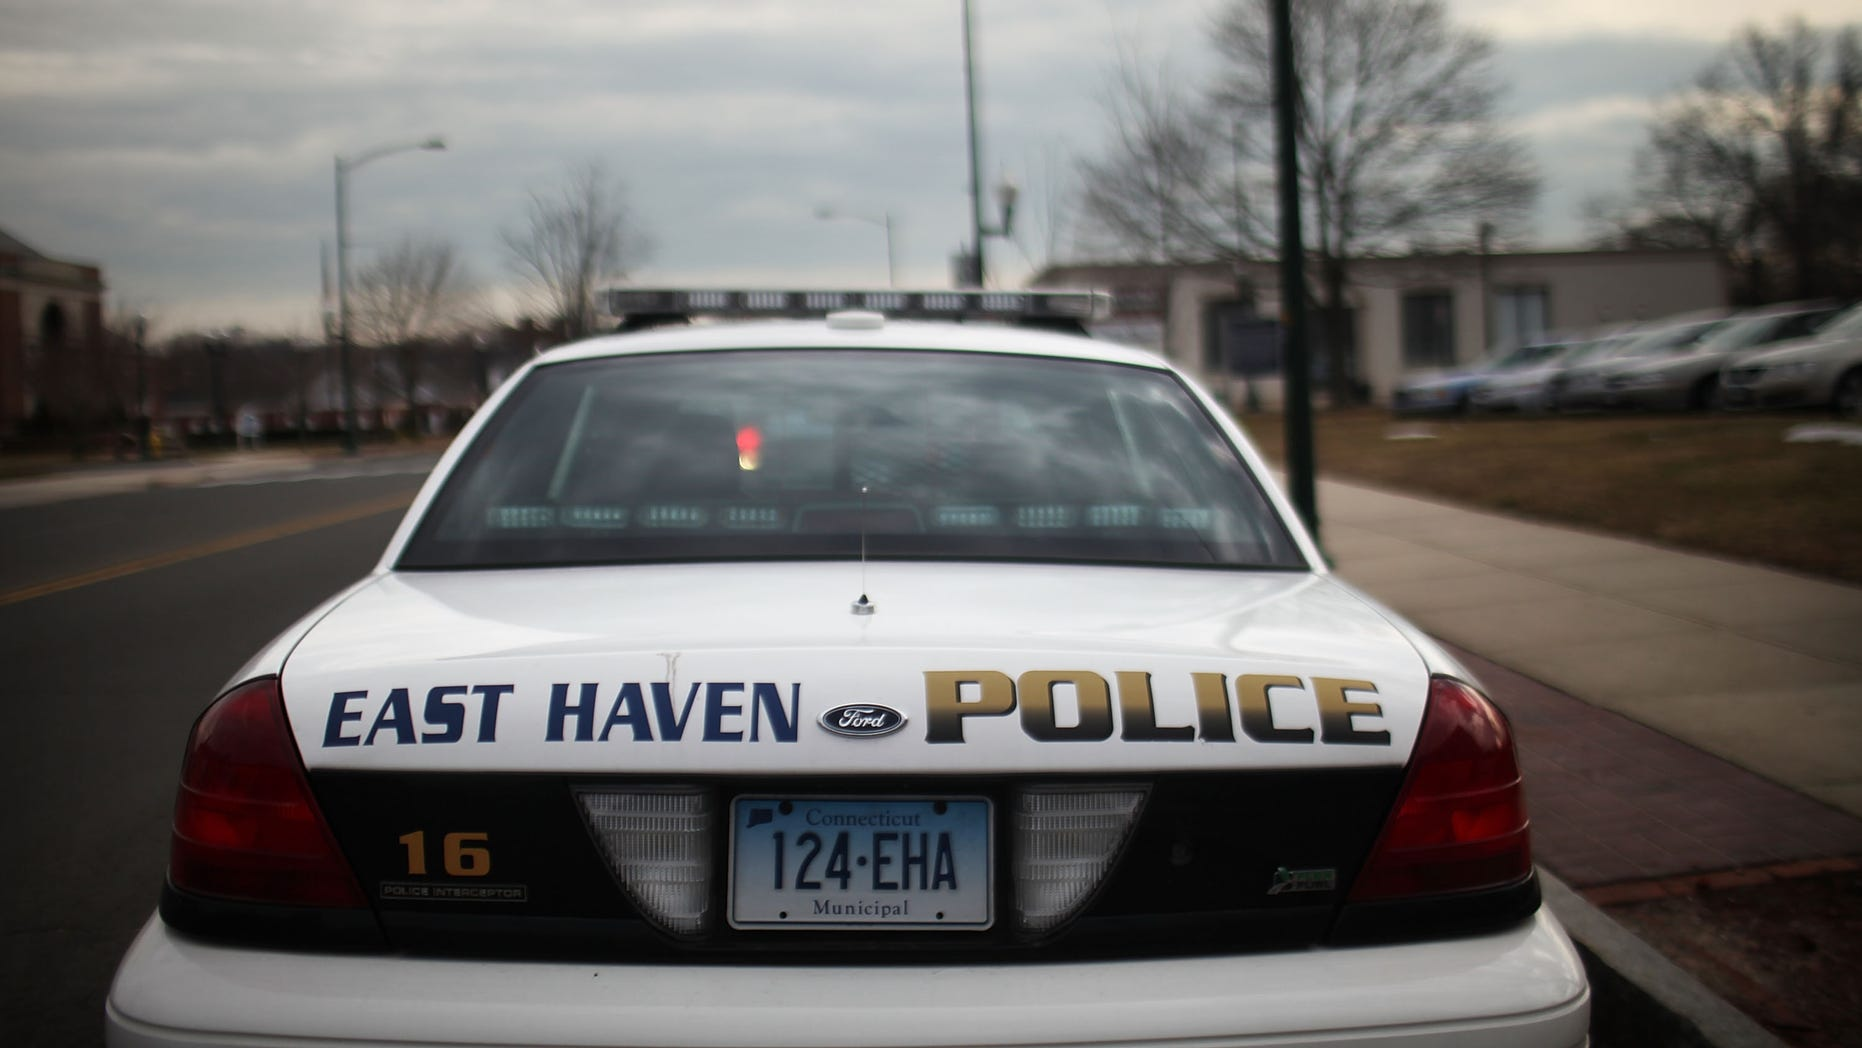 EAST HAVEN, CT - FEBRUARY 01:  An East Haven Police car is viewed on February 1, 2012 in East Haven, Connecticut. Following an investigation by the FBI, four East Haven police officers were arrested last week and accused of abusing Latinos in the working class community of 28,000 people which was nearly predominately white a generation ago. A recent civil rights investigation which was released last month revealed a pattern of discriminatory policing East Haven and the town has been warned by the U.S. Justice Department to make reforms. The arrested officers have been accused of subjecting Hispanics to beatings and false arrests among other things. Currently East Haven's Latino population is around 10 percent.  (Photo by Spencer Platt/Getty Images)